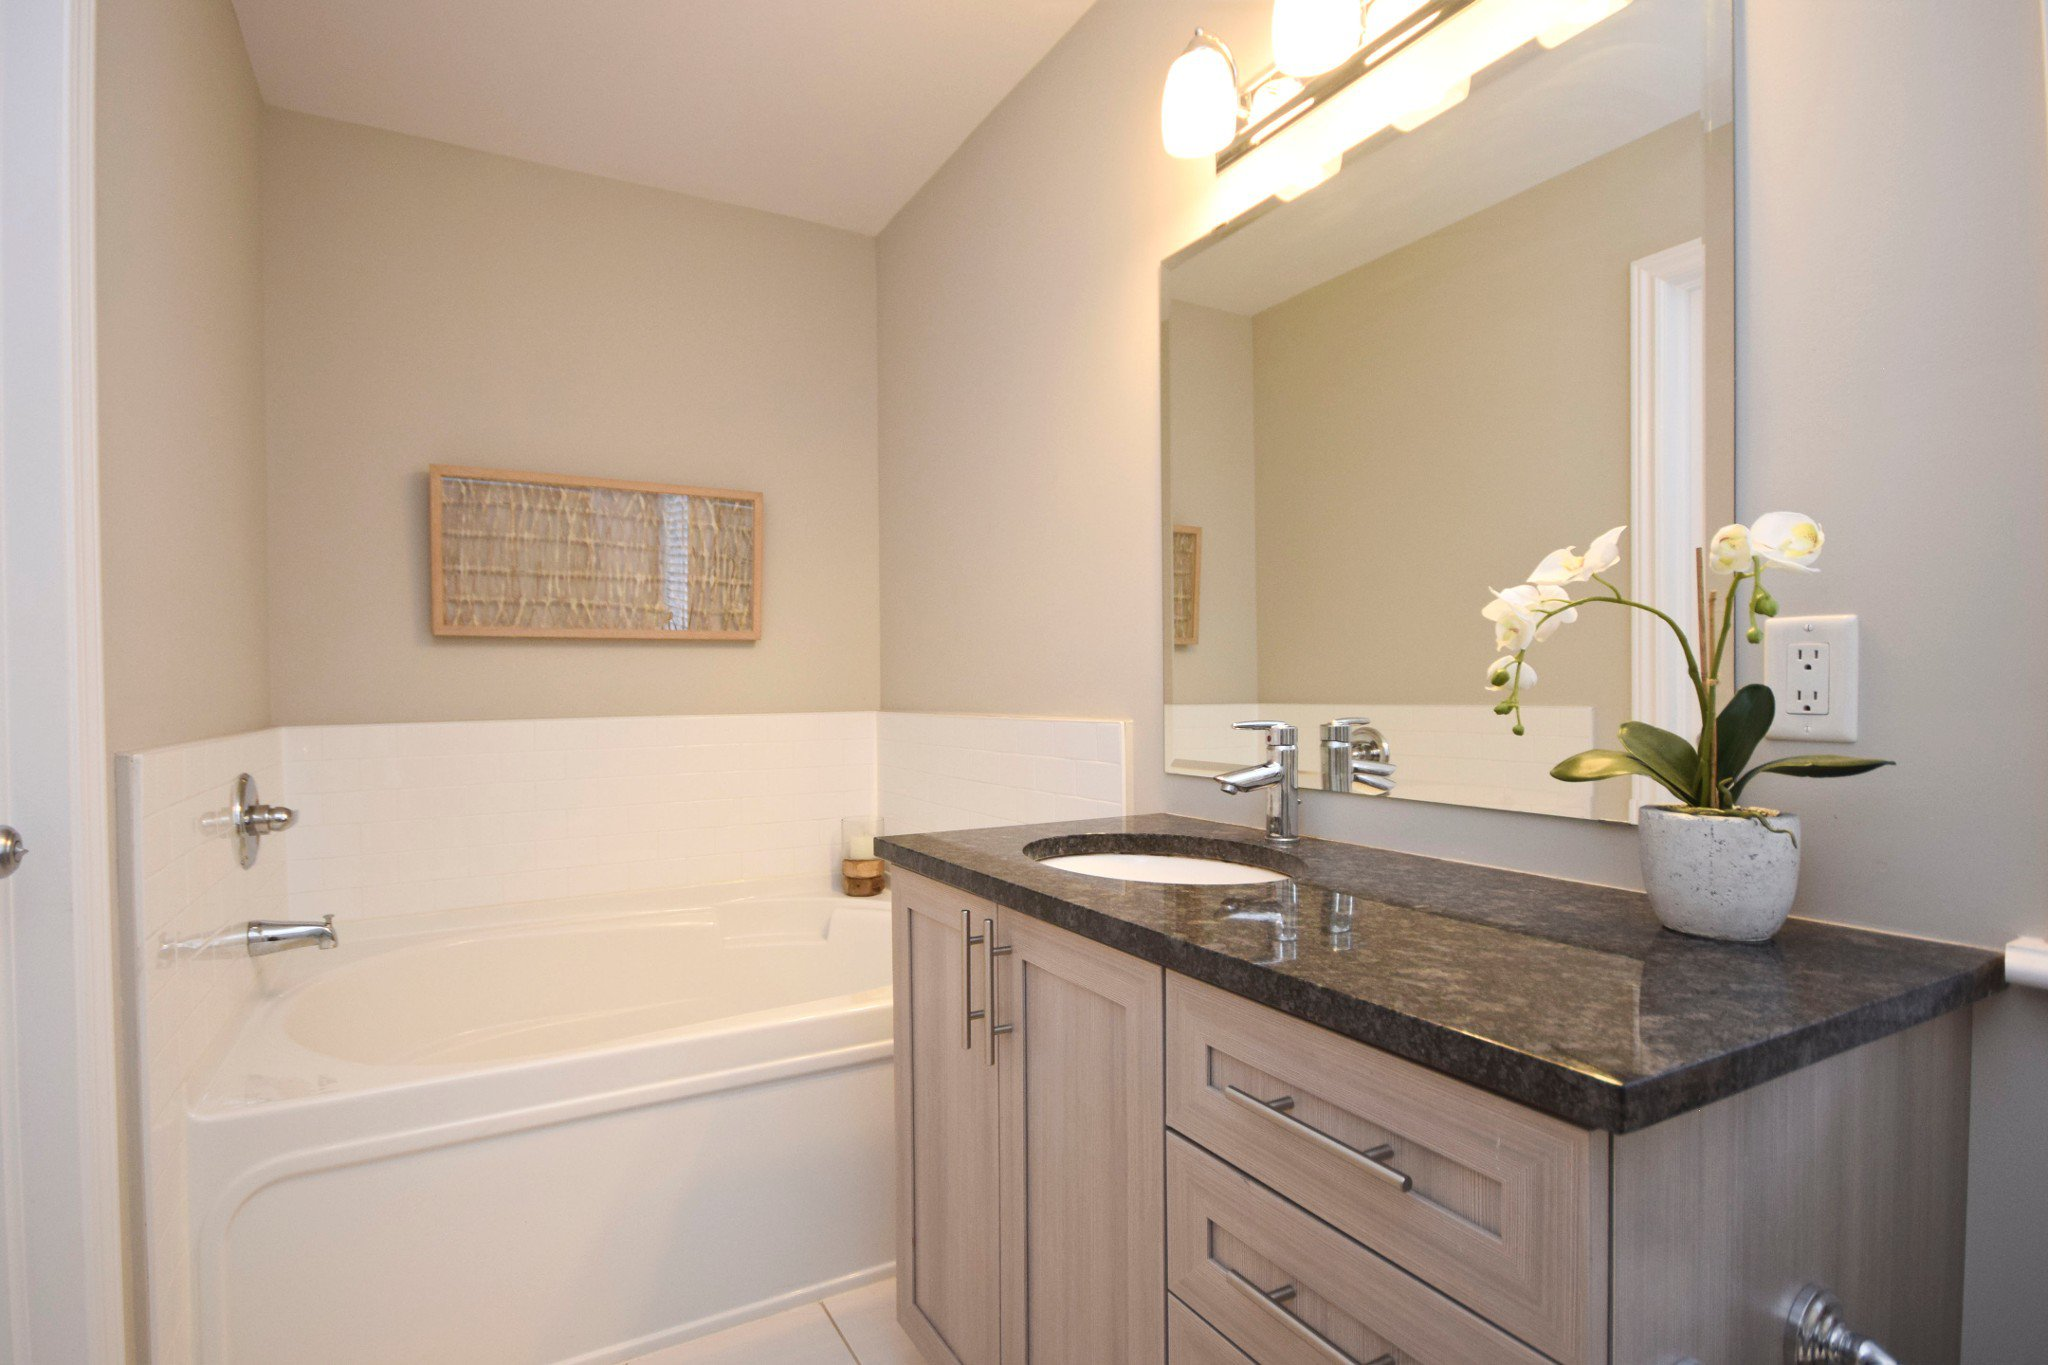 Photo 46: Photos: 131 Popplewell Crescent in Ottawa: Cedargrove / Fraserdale House for sale (Barrhaven)  : MLS®# 1130335